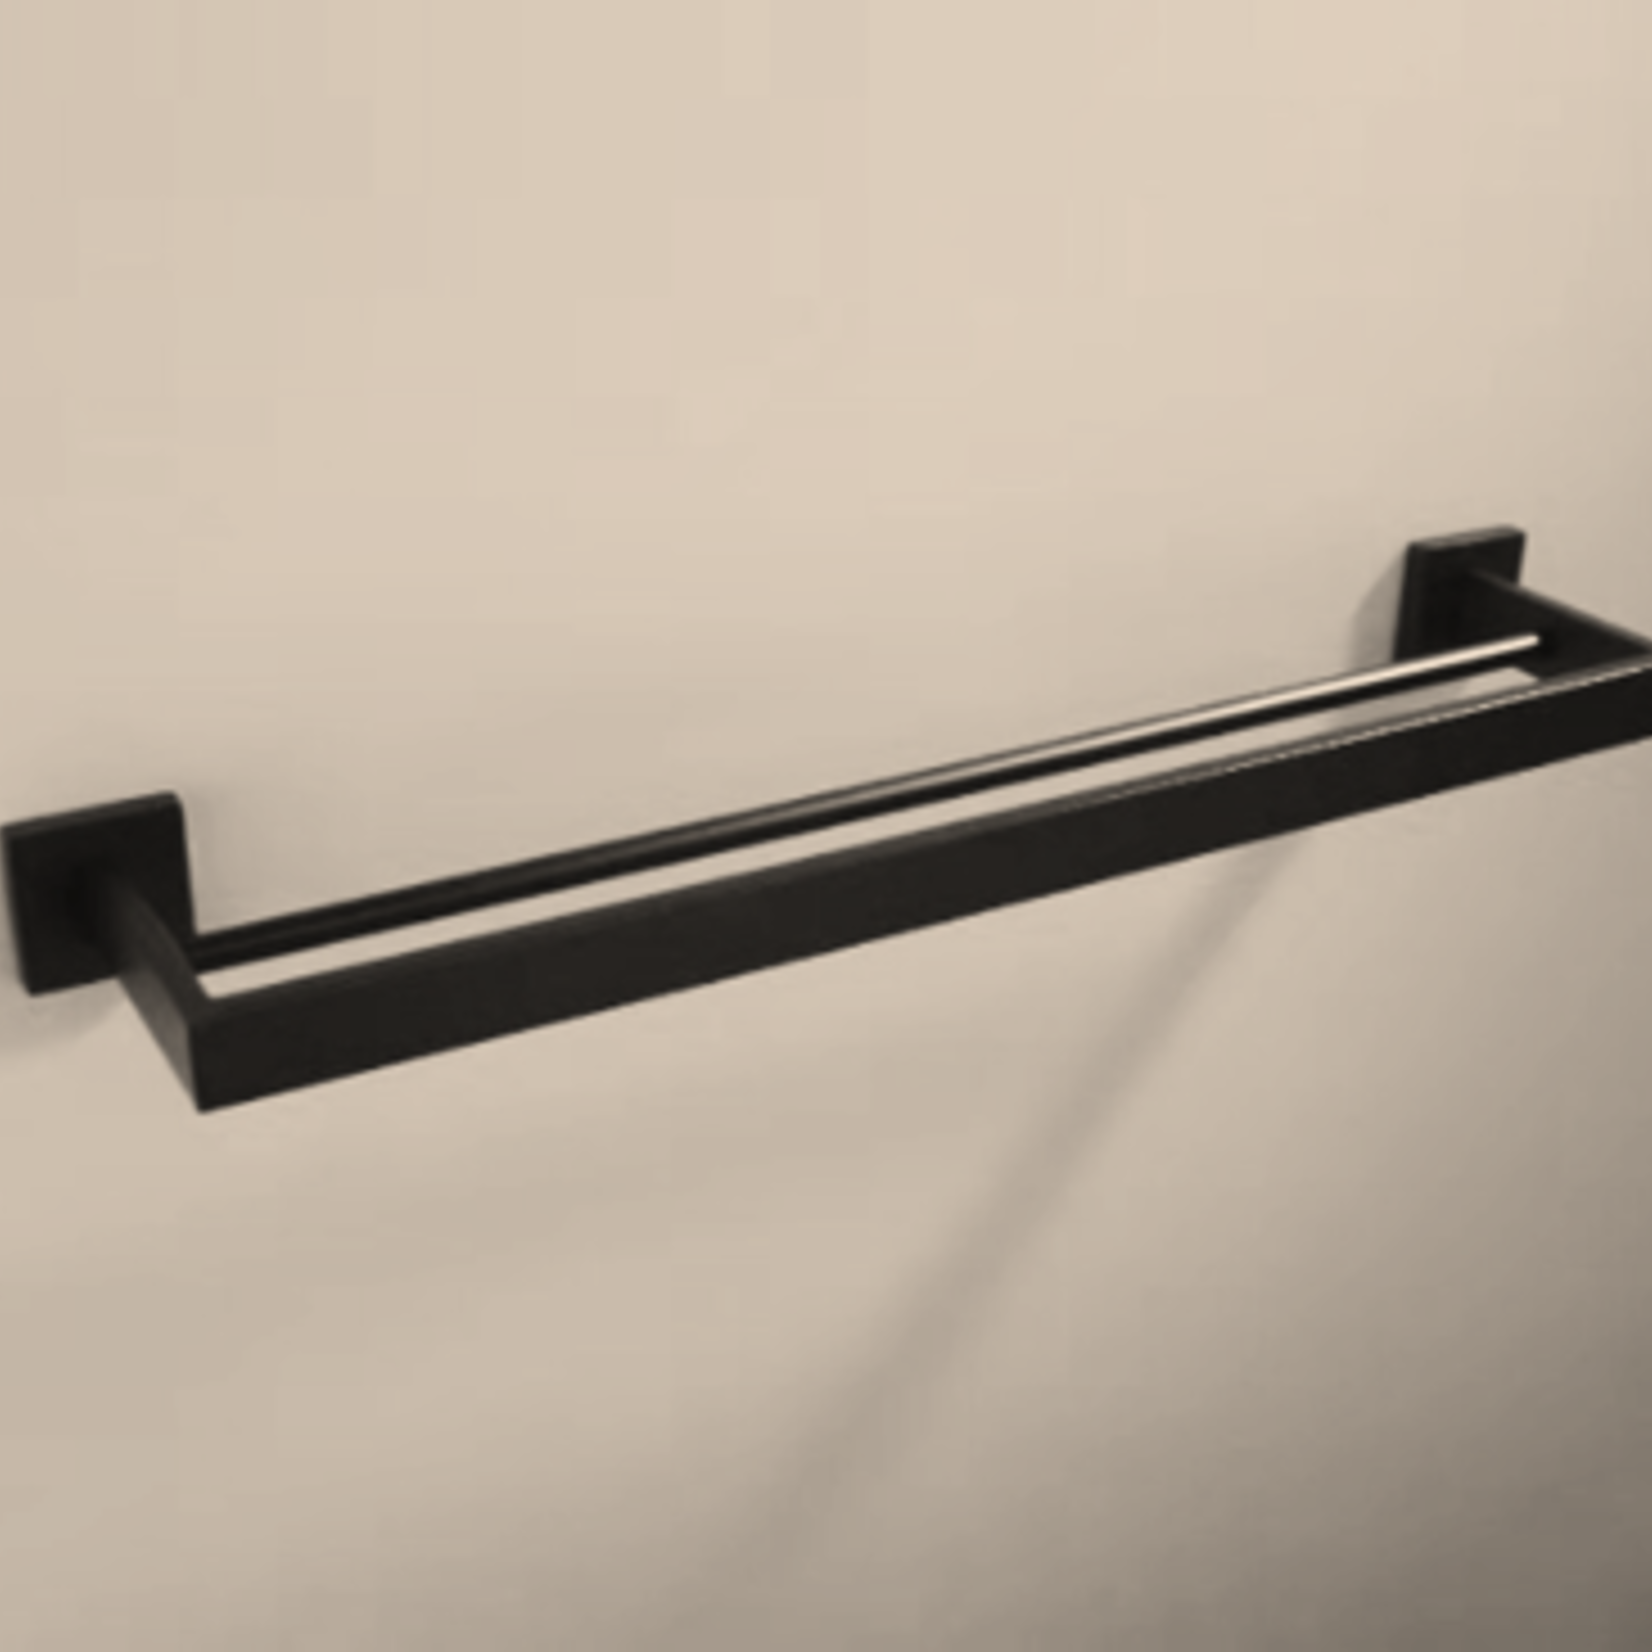 Double towel bar black 7002-11